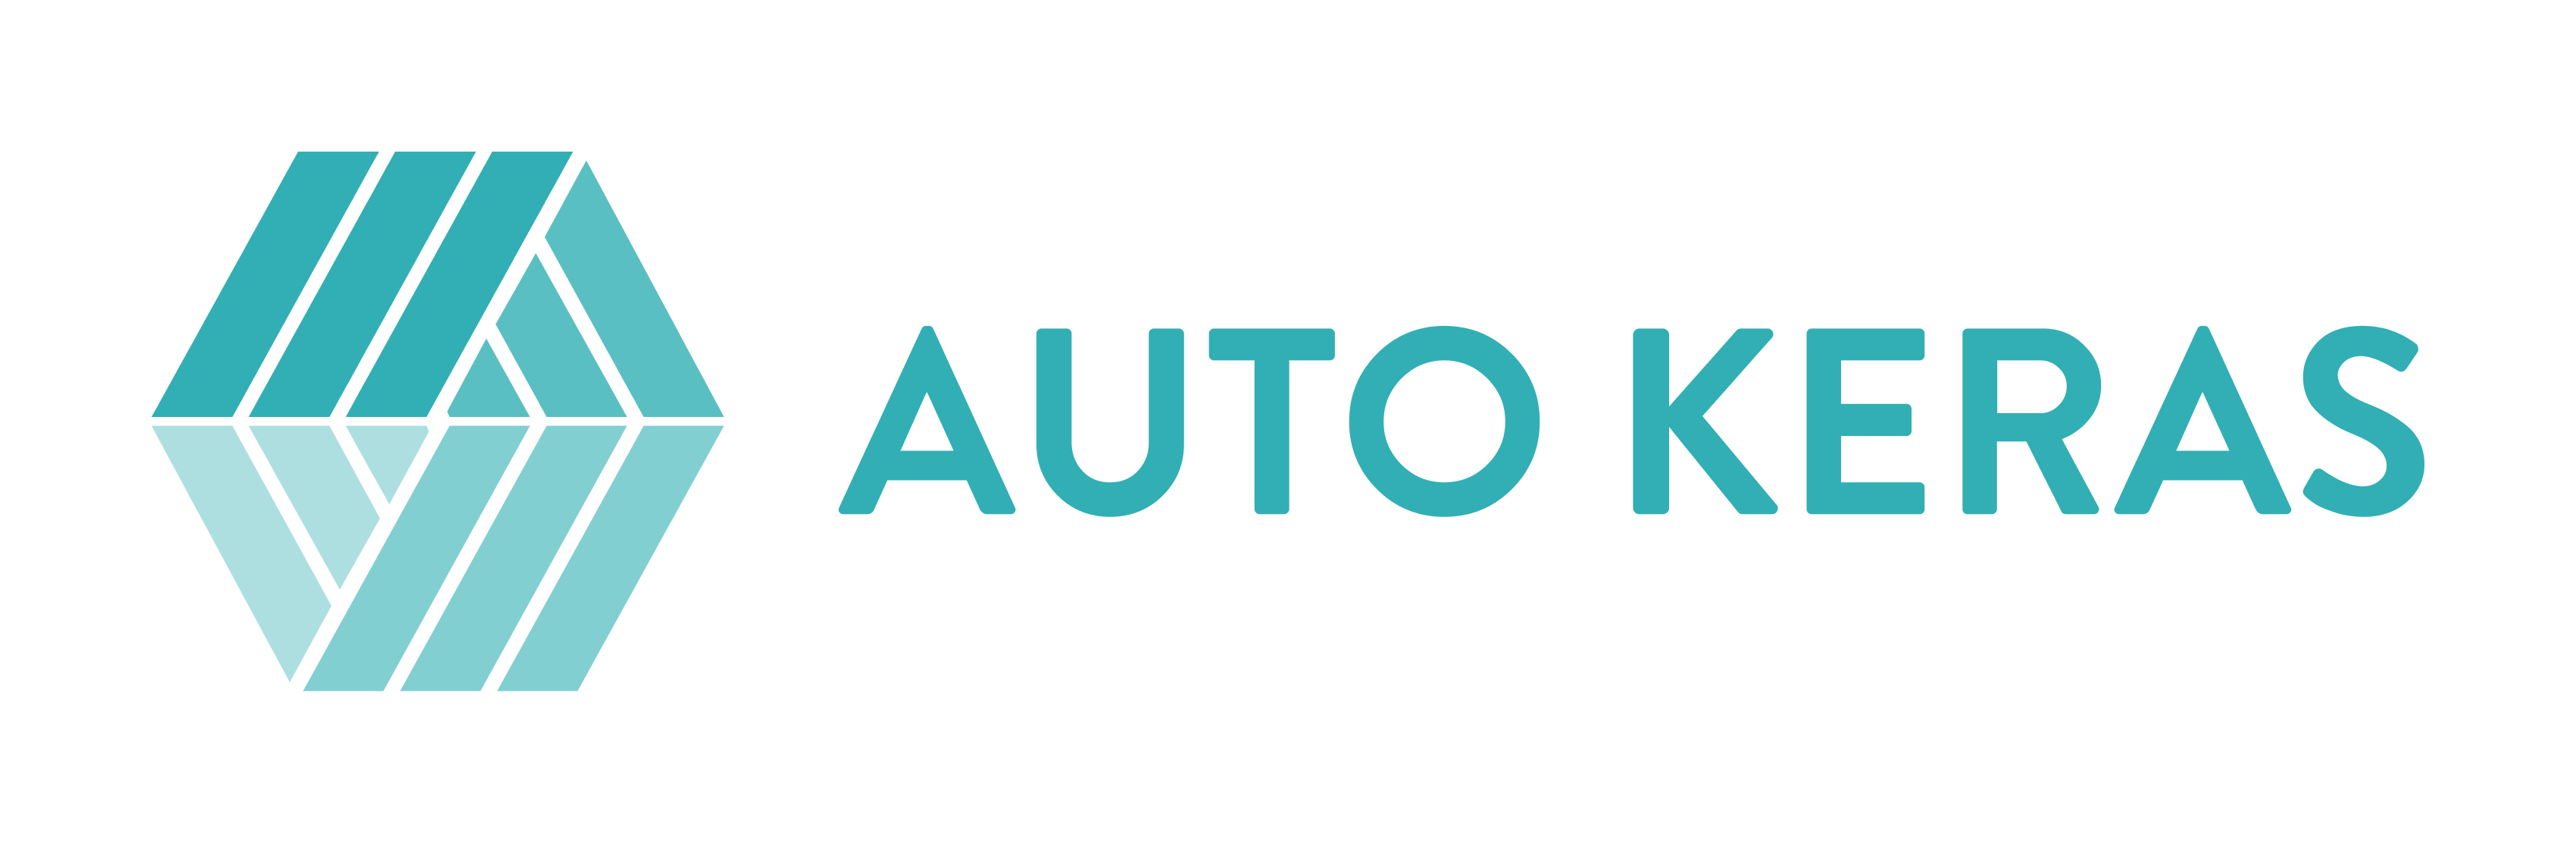 Auto-Keras - A Must-Use Open Source Python Package for